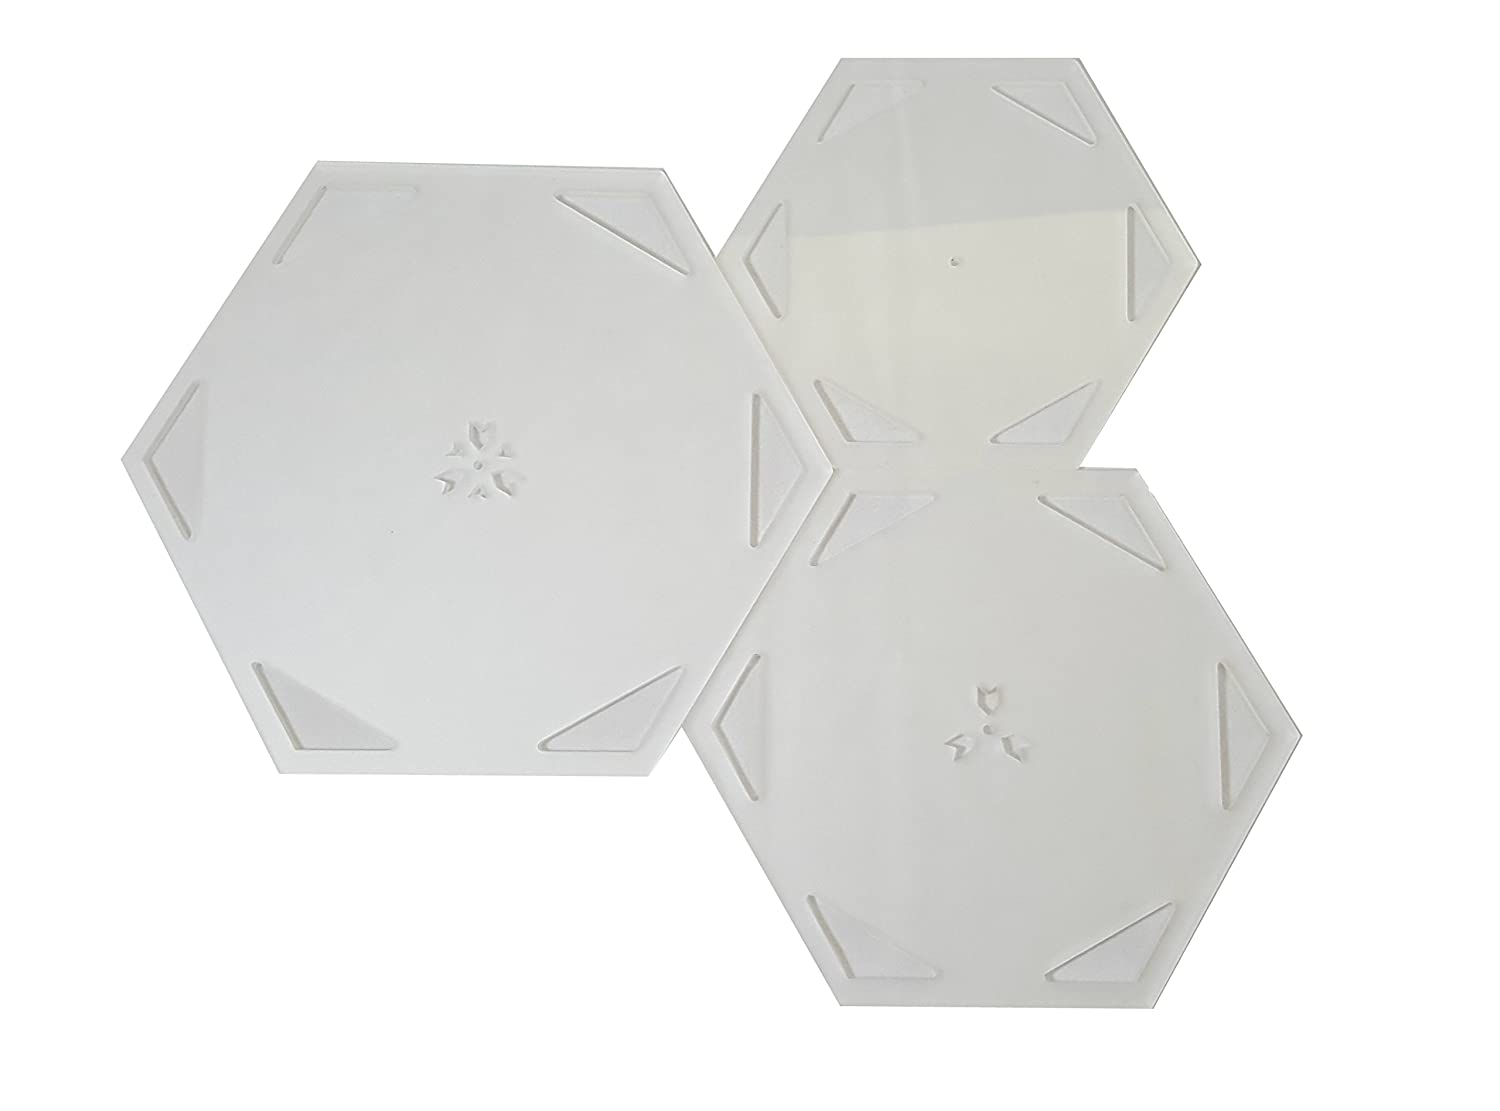 Duroedge Acrylic Hexagonal Quilting/Patchwork Frosted Transparent Template Set